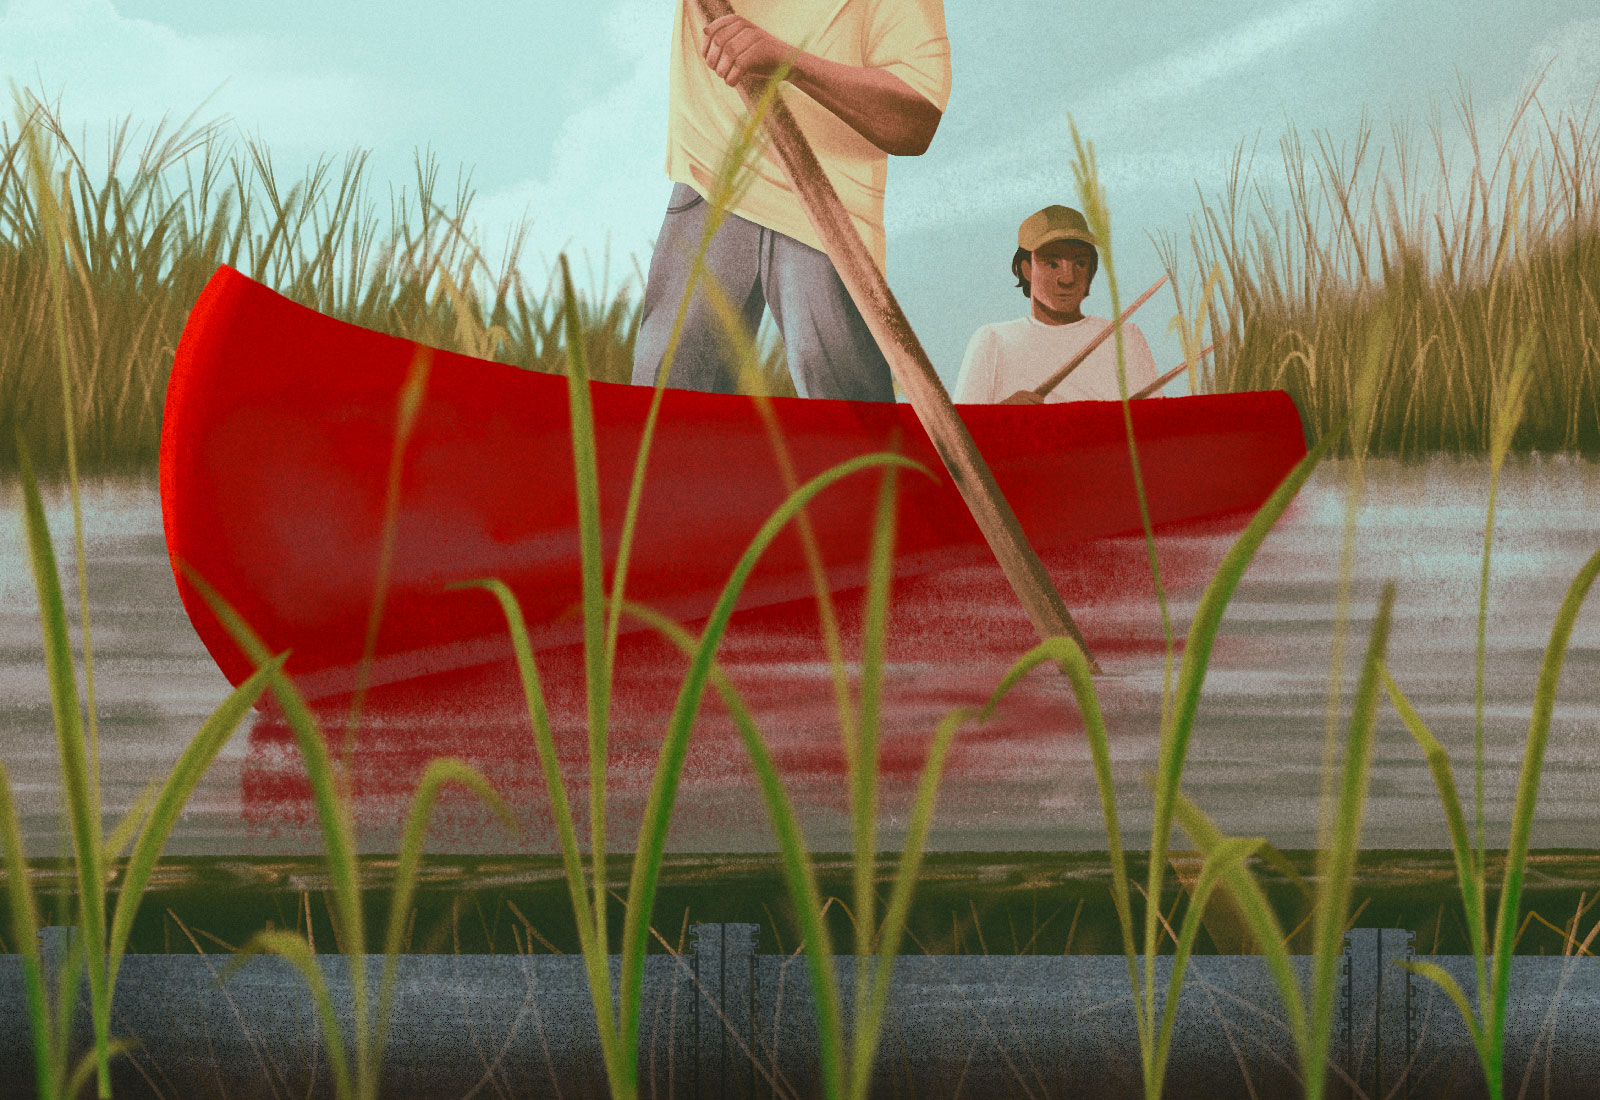 Illustration: Two First Nations men in a red canoe harvesting wild rice, with a pipeline under the water